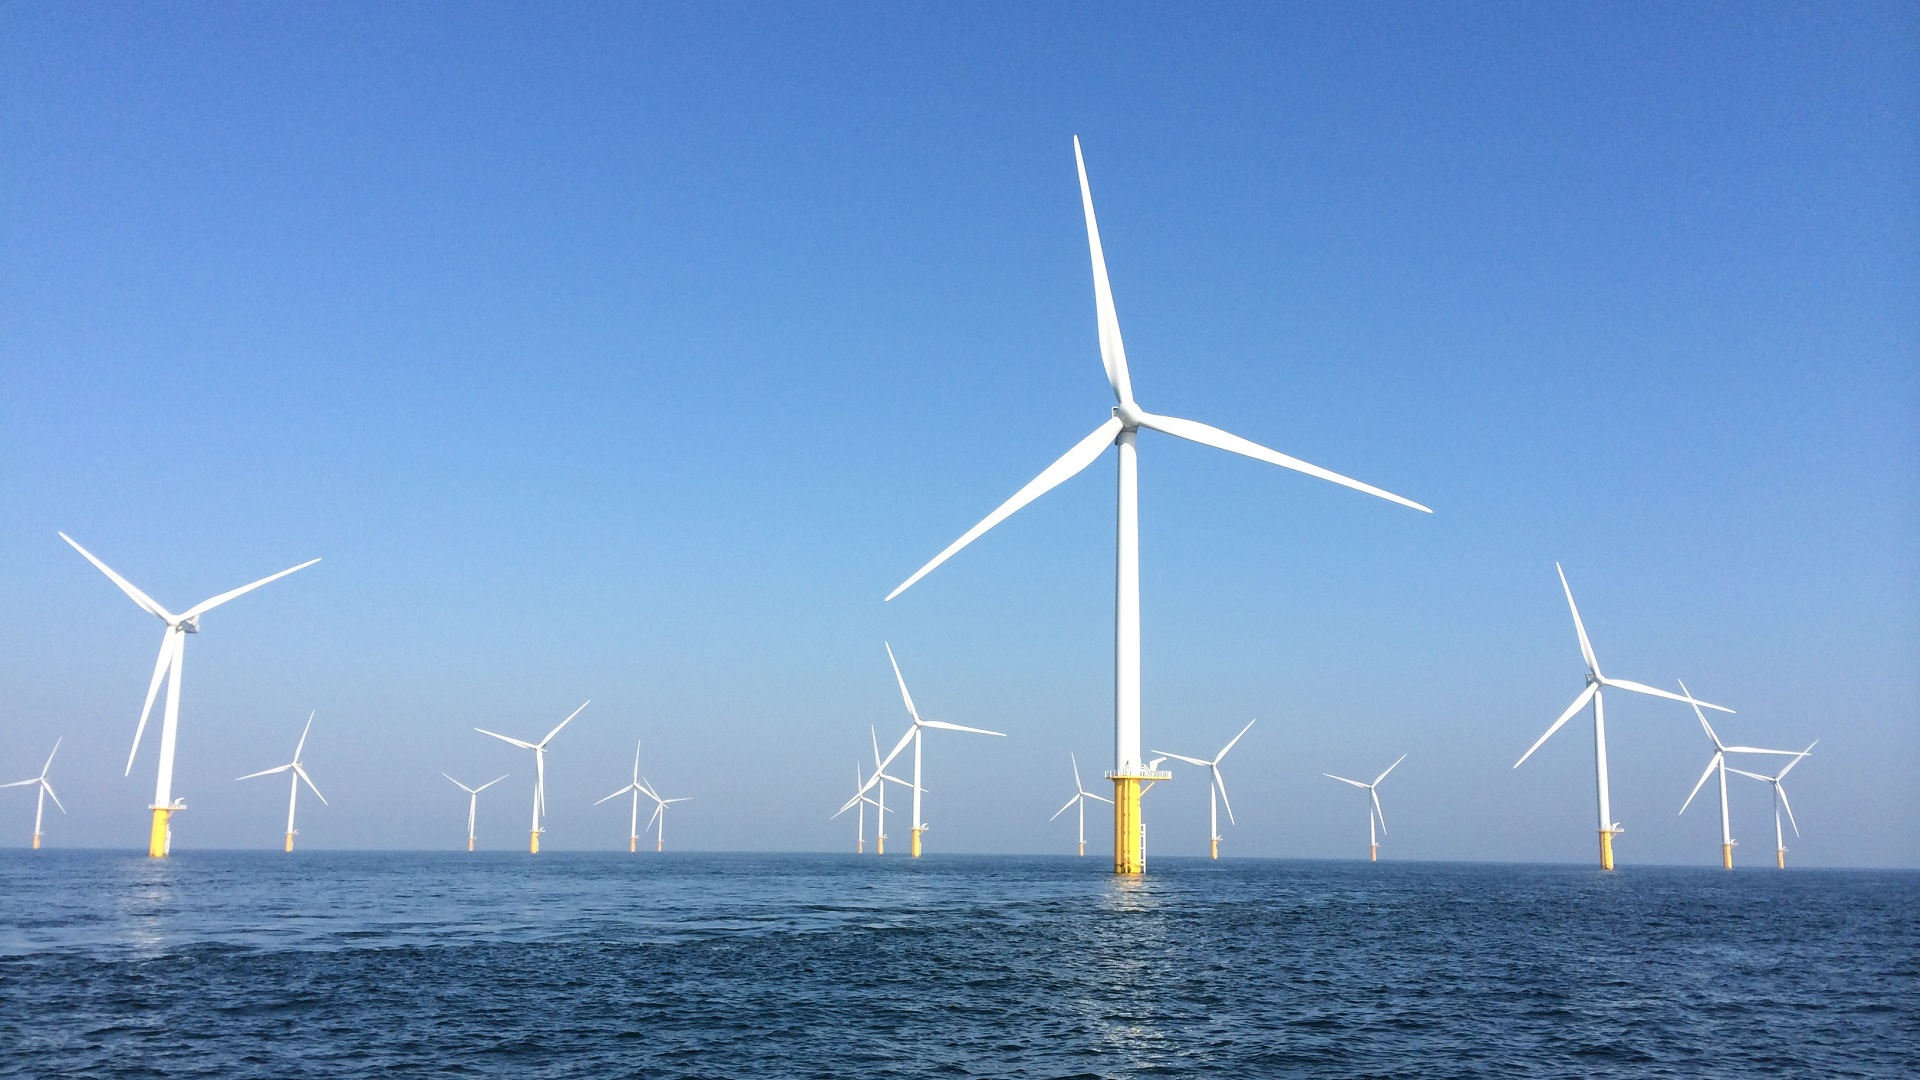 Participation in European offshore wind power projects | Sumitomo